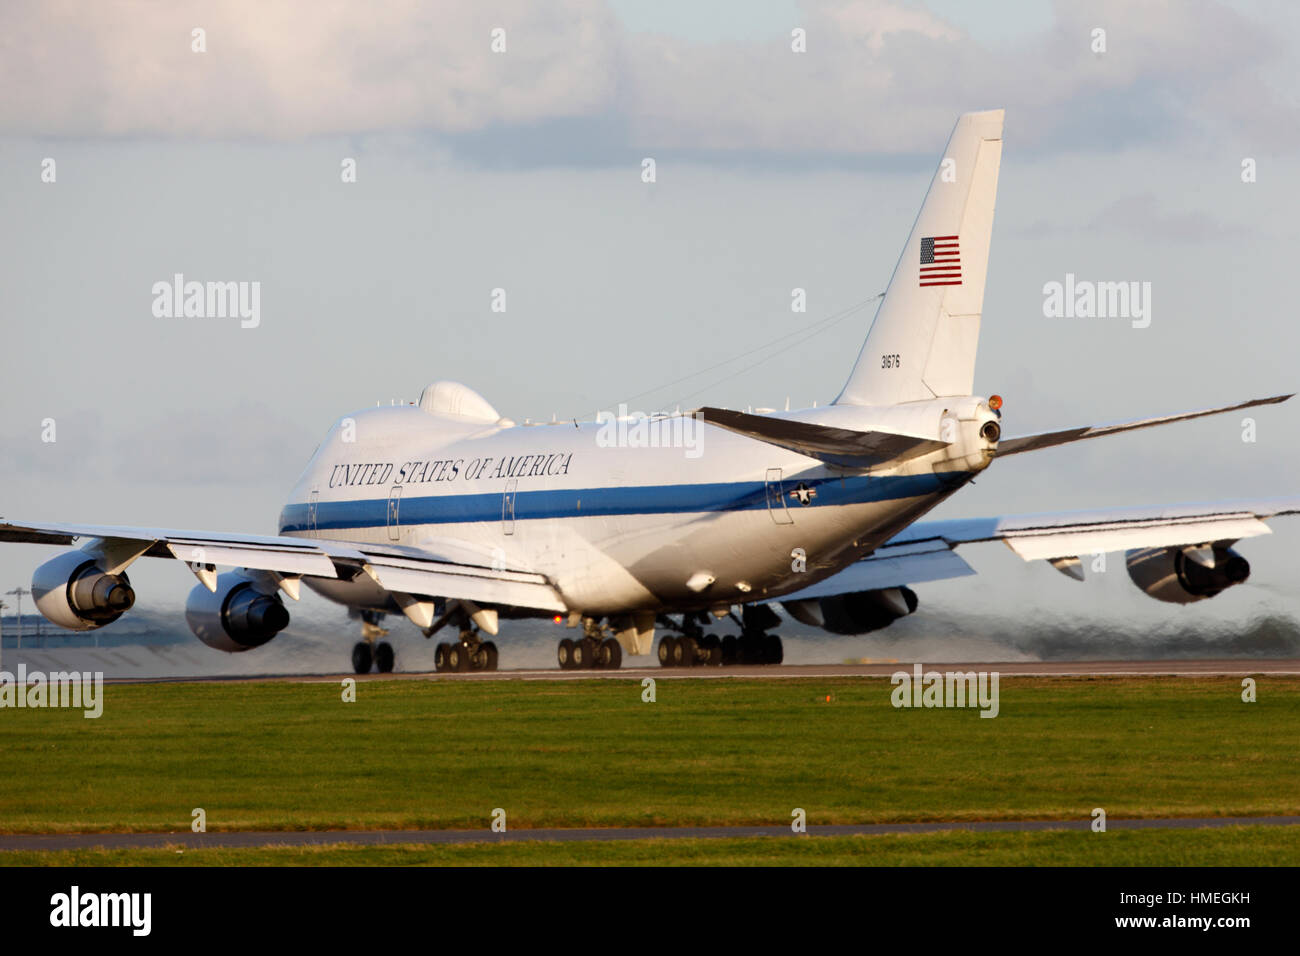 grim 22 73 1676 usaf united states air force boeing e 4b at london